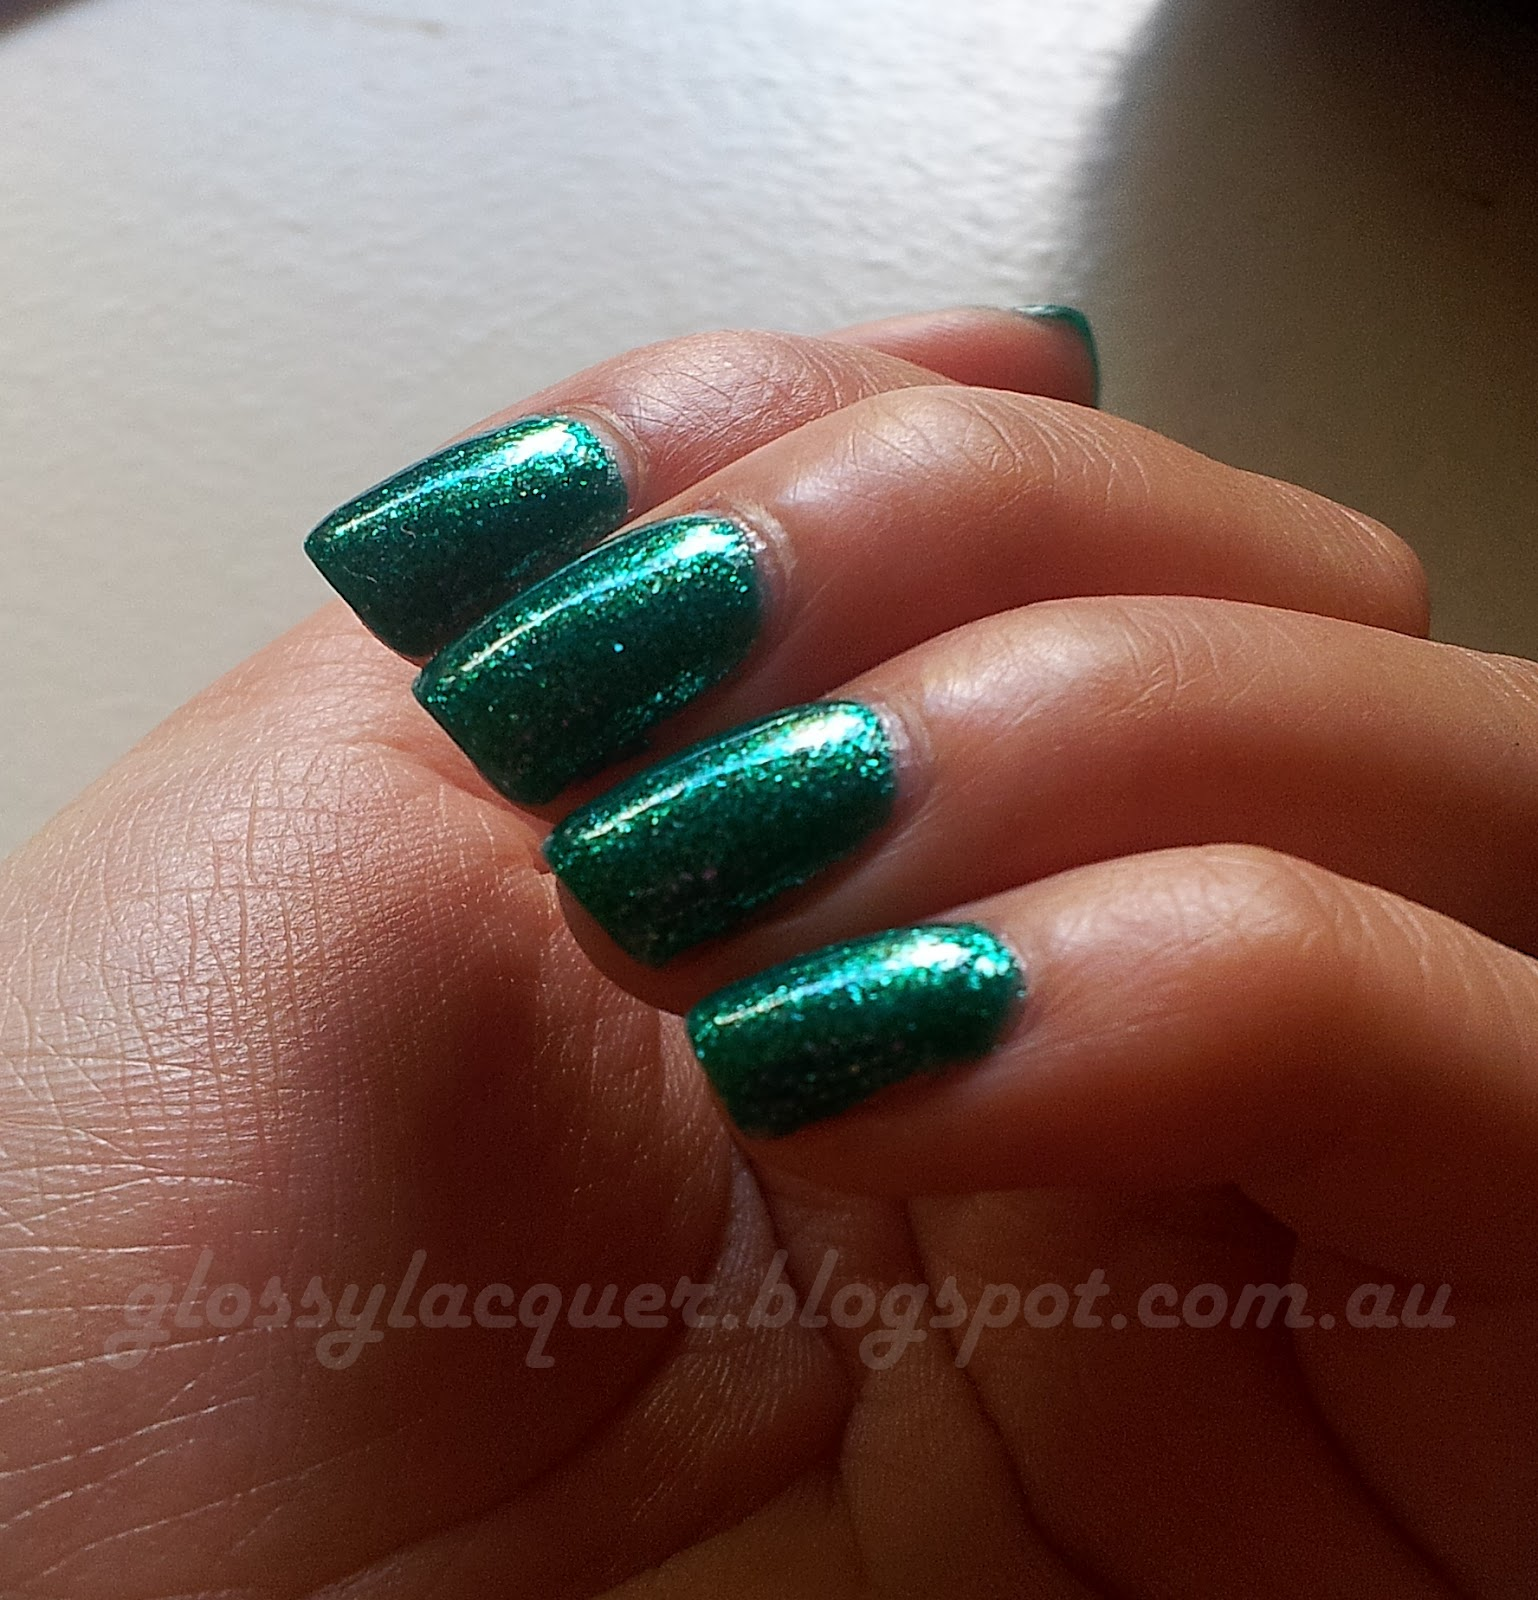 Glossy Lacquer: K.K. Nail Polish in Mint Chic (No. 27) Swatch and Review